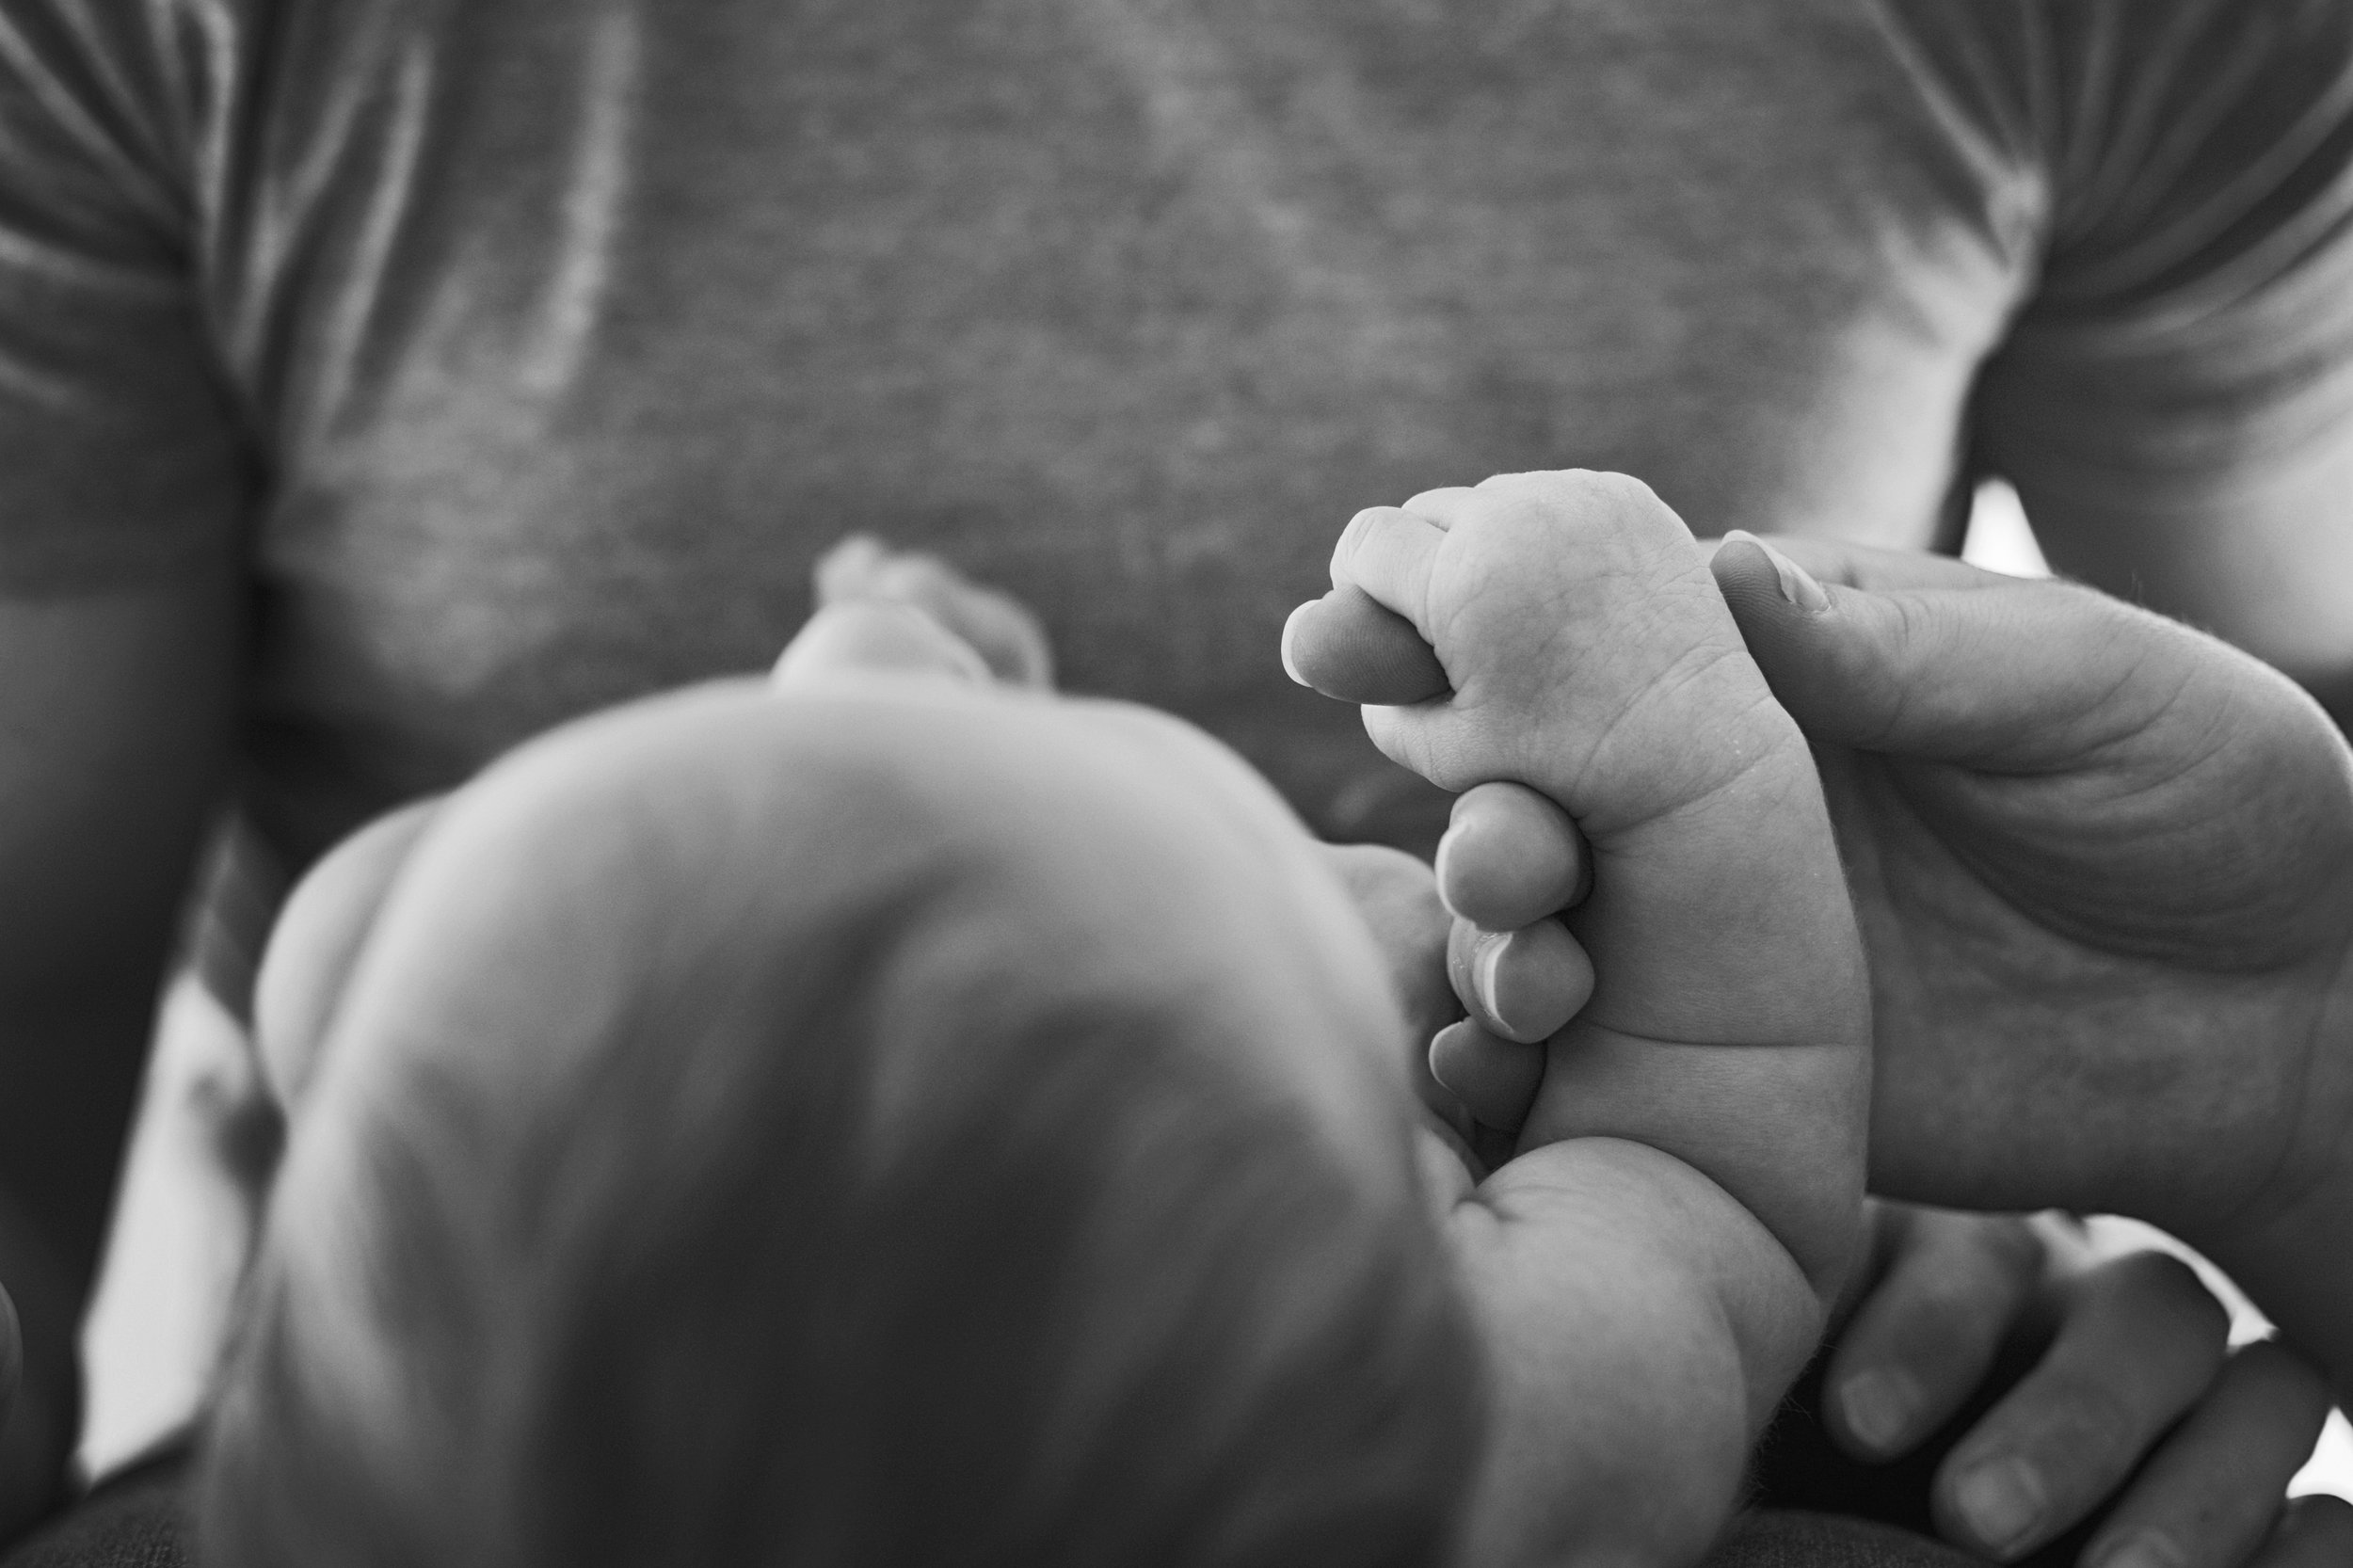 Central Virginia's best family photographer documents a baby grasping his mom's finger while laying on dad's lap.